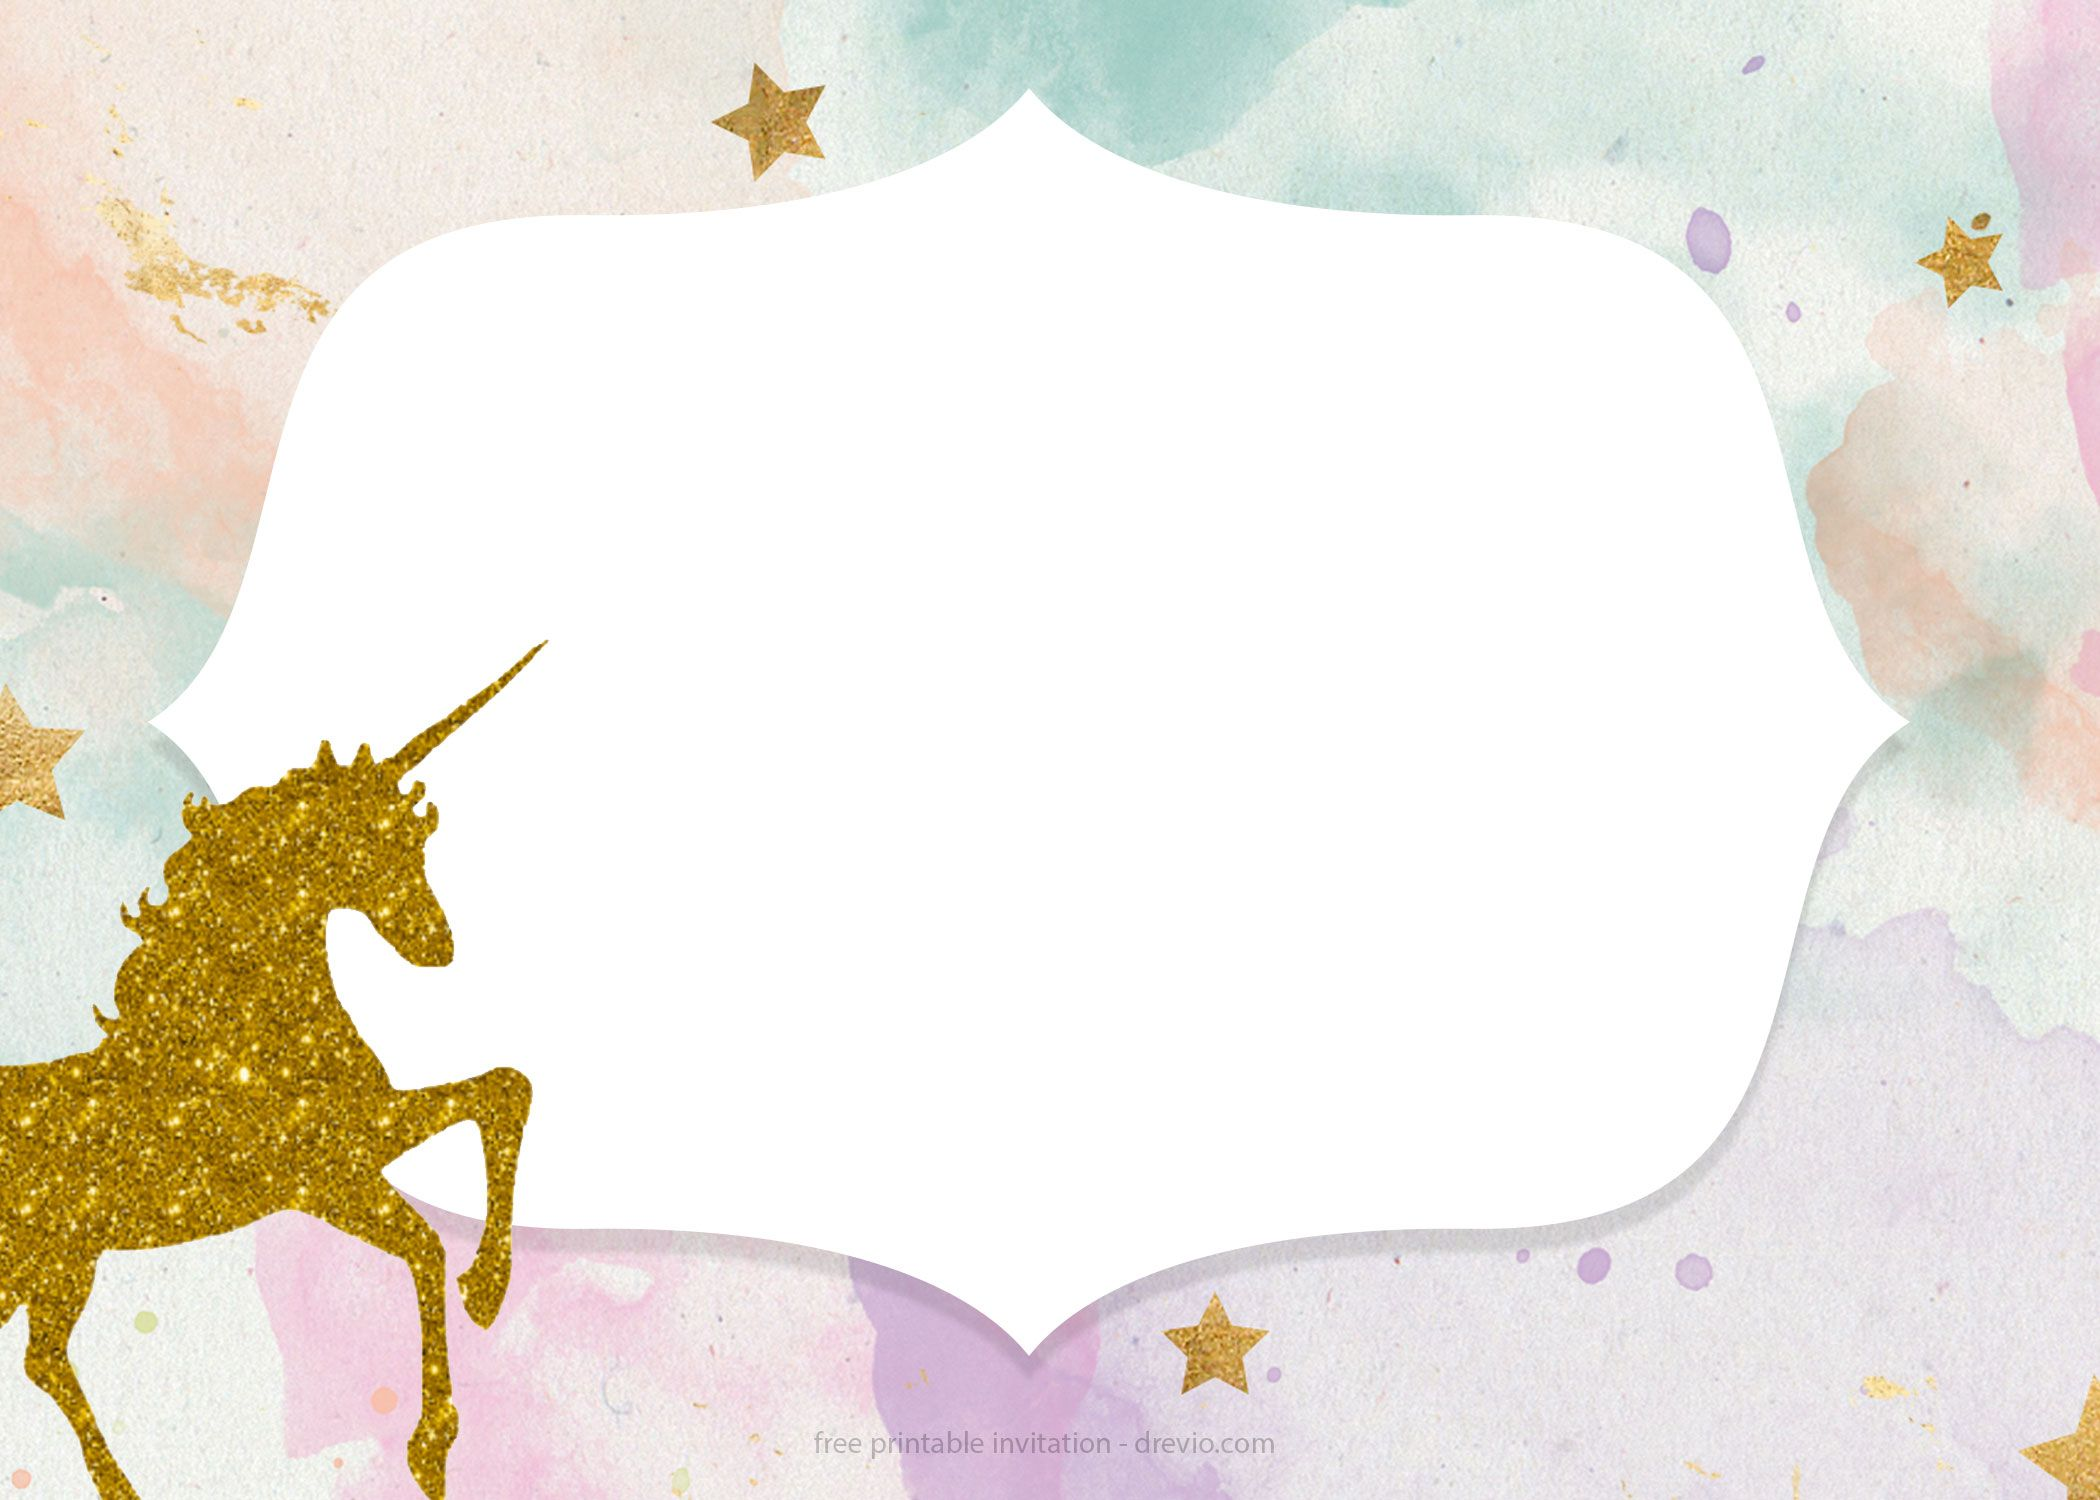 graphic regarding Free Printable Unicorn Template referred to as Totally free Whimsical Pastel Unicorn Birthday Invitation No cost